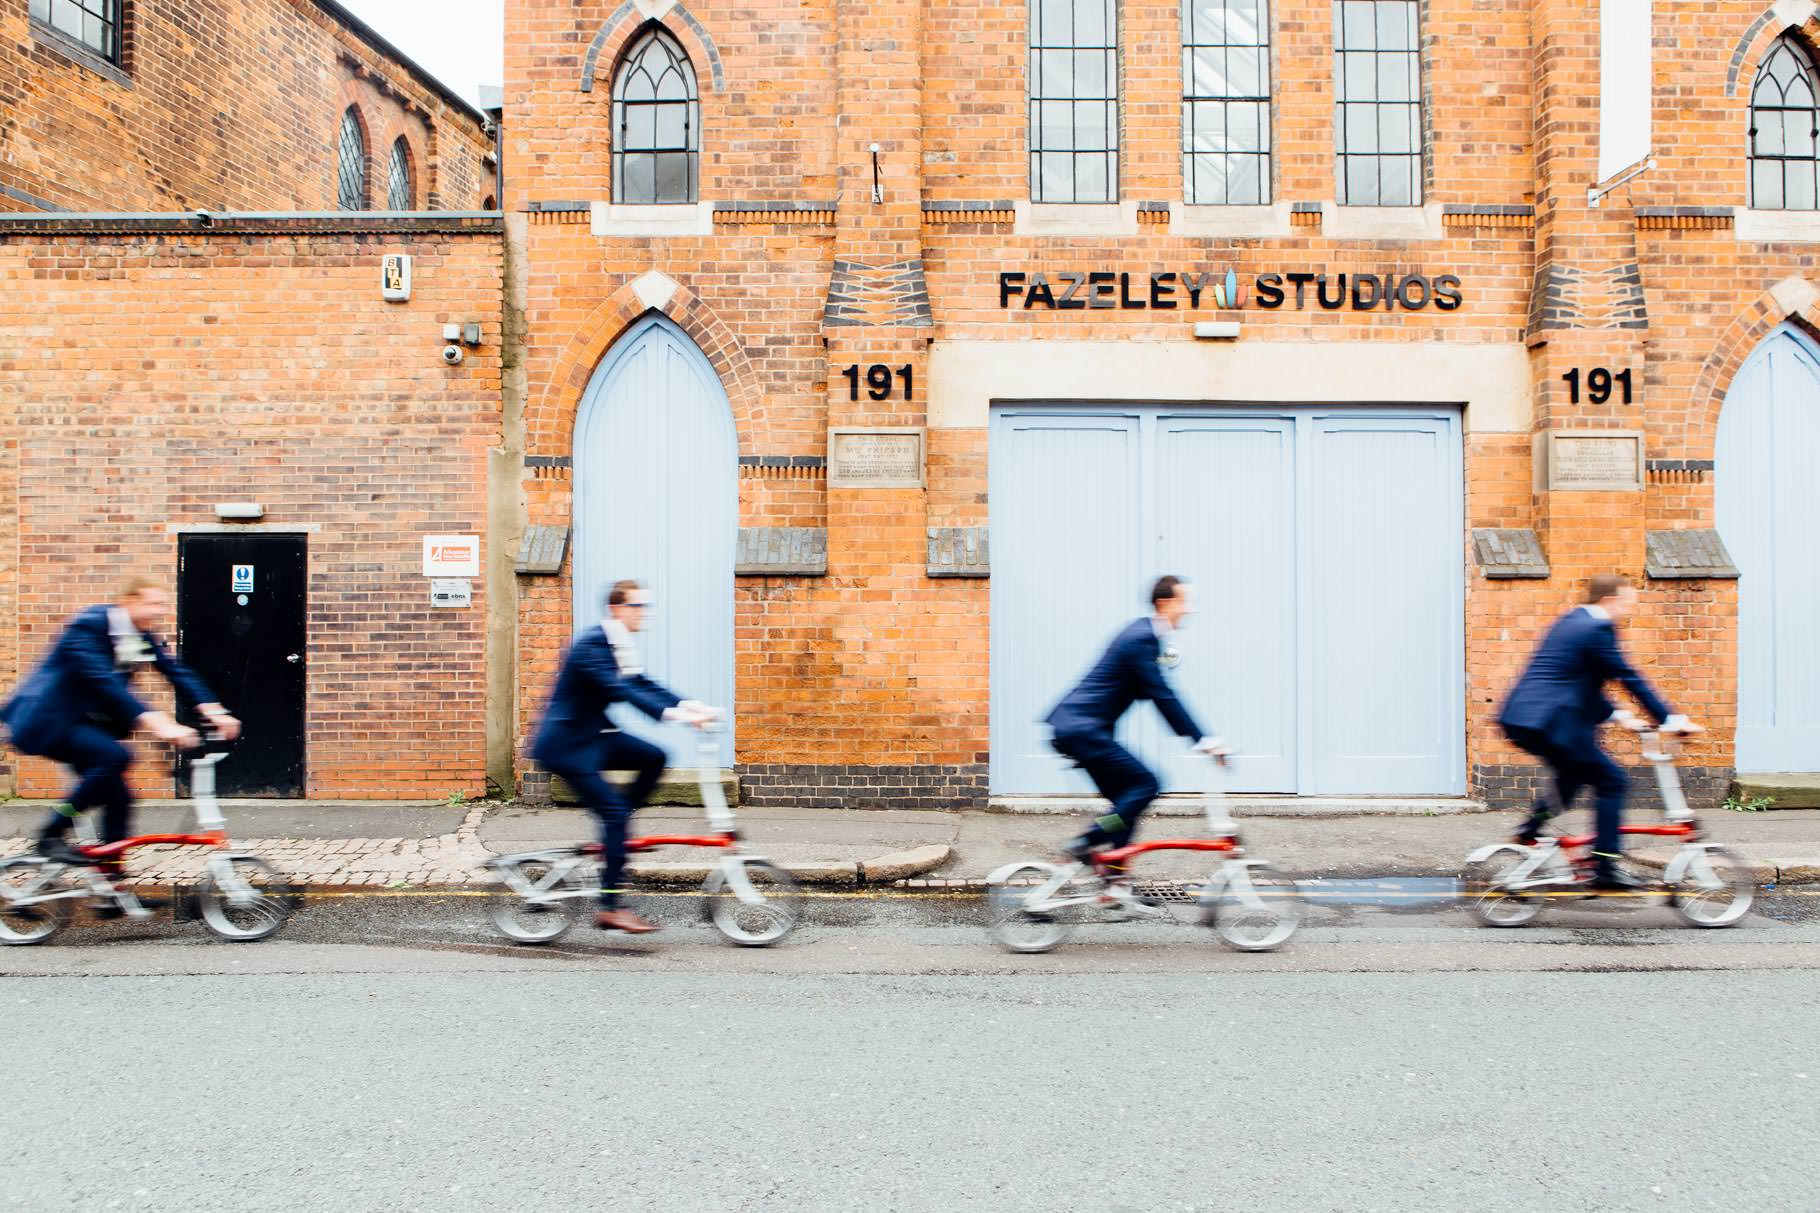 Fazeley studios wedding with groom and ushers riding Brompton bicycles